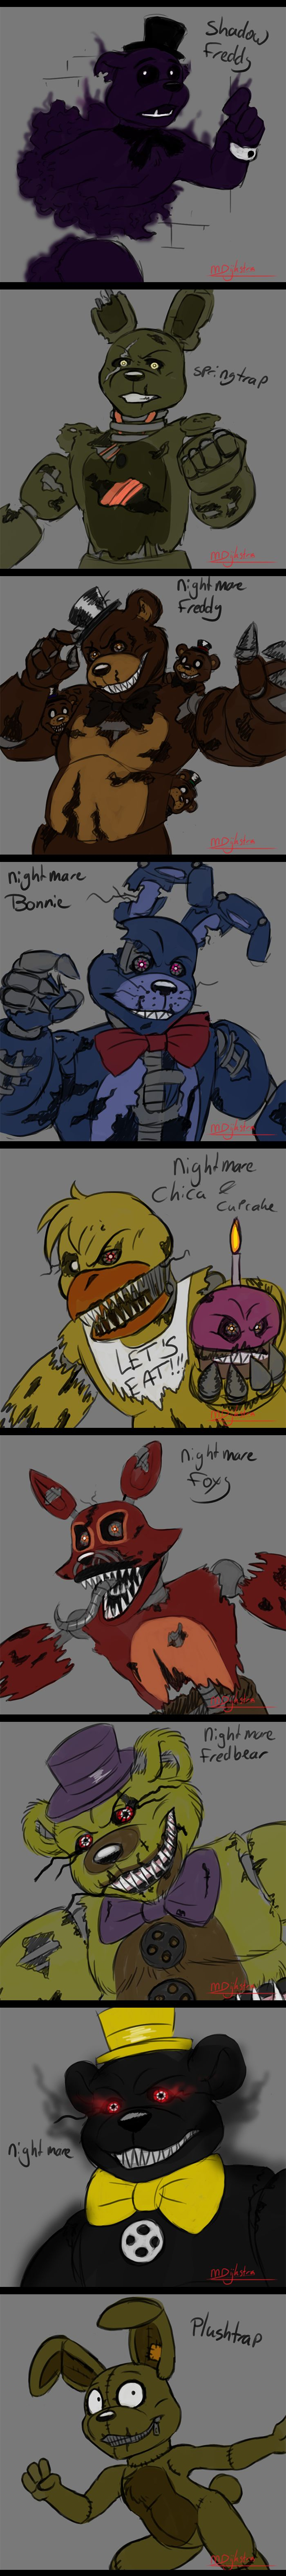 -FnaF Schetses- part 2 by martiigr5.deviantart.com on @DeviantArt